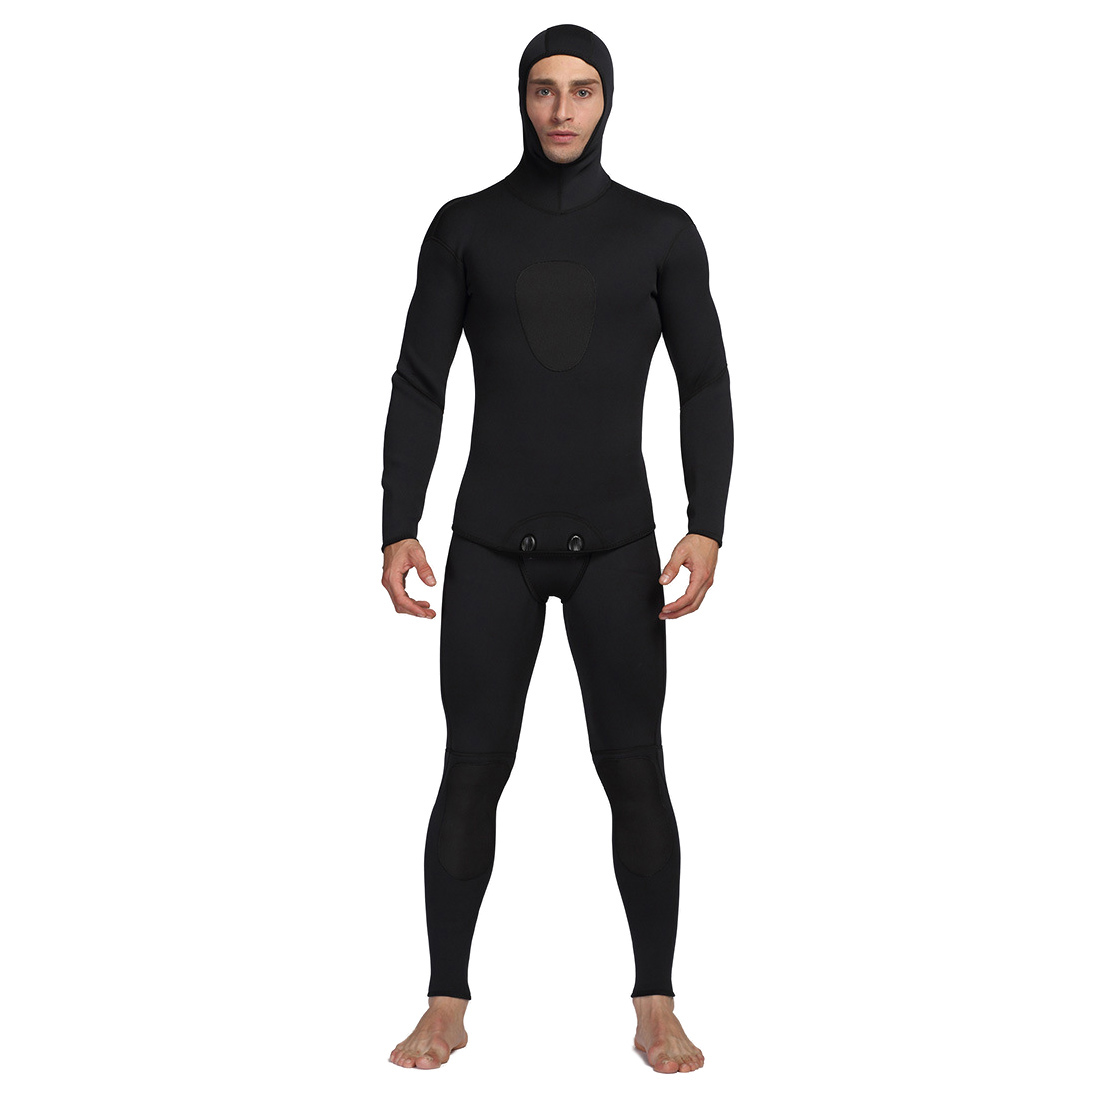 3mm Neoprene Diving Suit For Men Swimming Surfing Jump Suit Surfacing Warm Wetsuit Suspender Trousers And Jacket 2pcs/set3mm Neoprene Diving Suit For Men Swimming Surfing Jump Suit Surfacing Warm Wetsuit Suspender Trousers And Jacket 2pcs/set